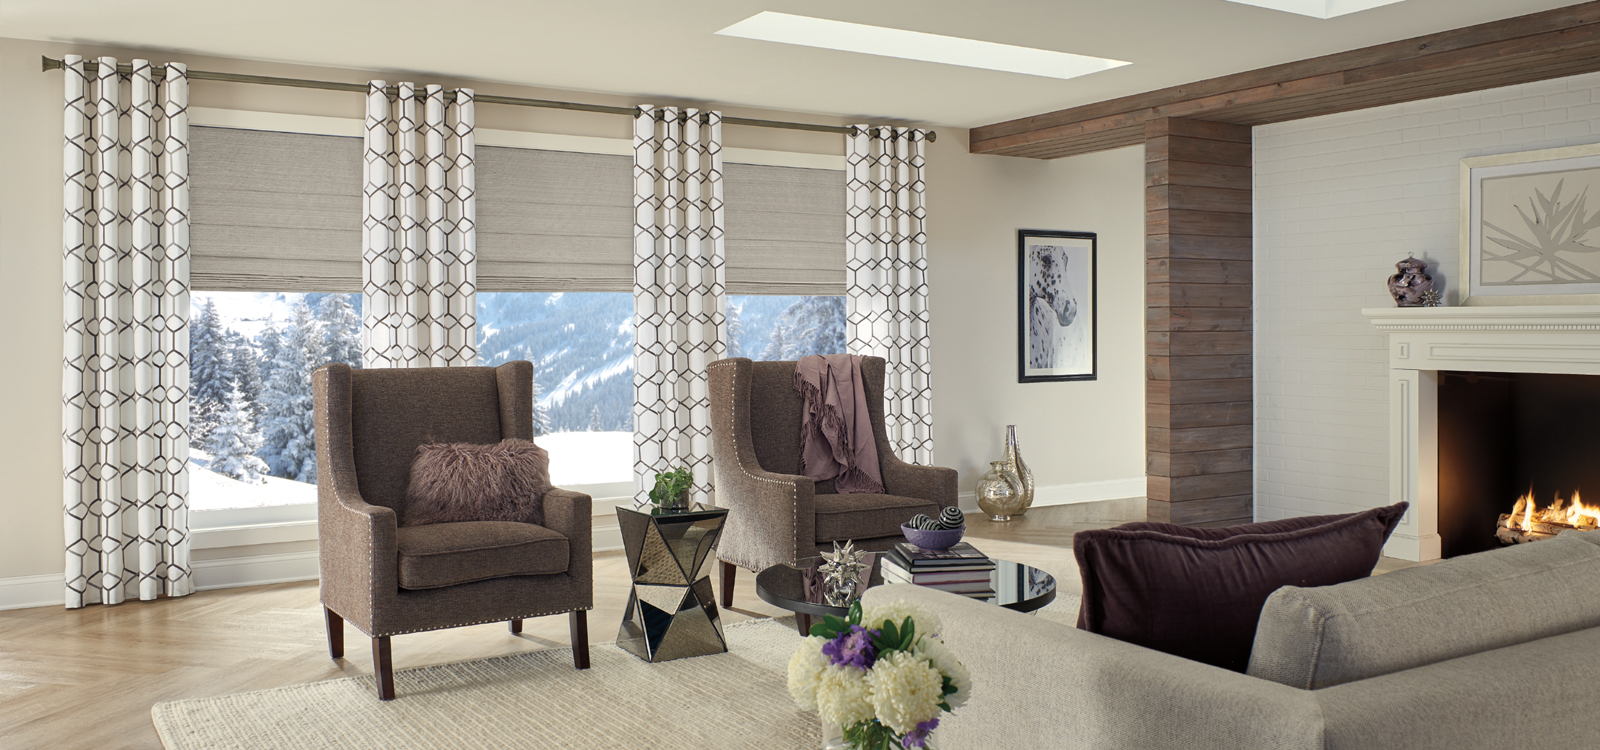 Horizons Soft Treatments Roman Shades Zblinds